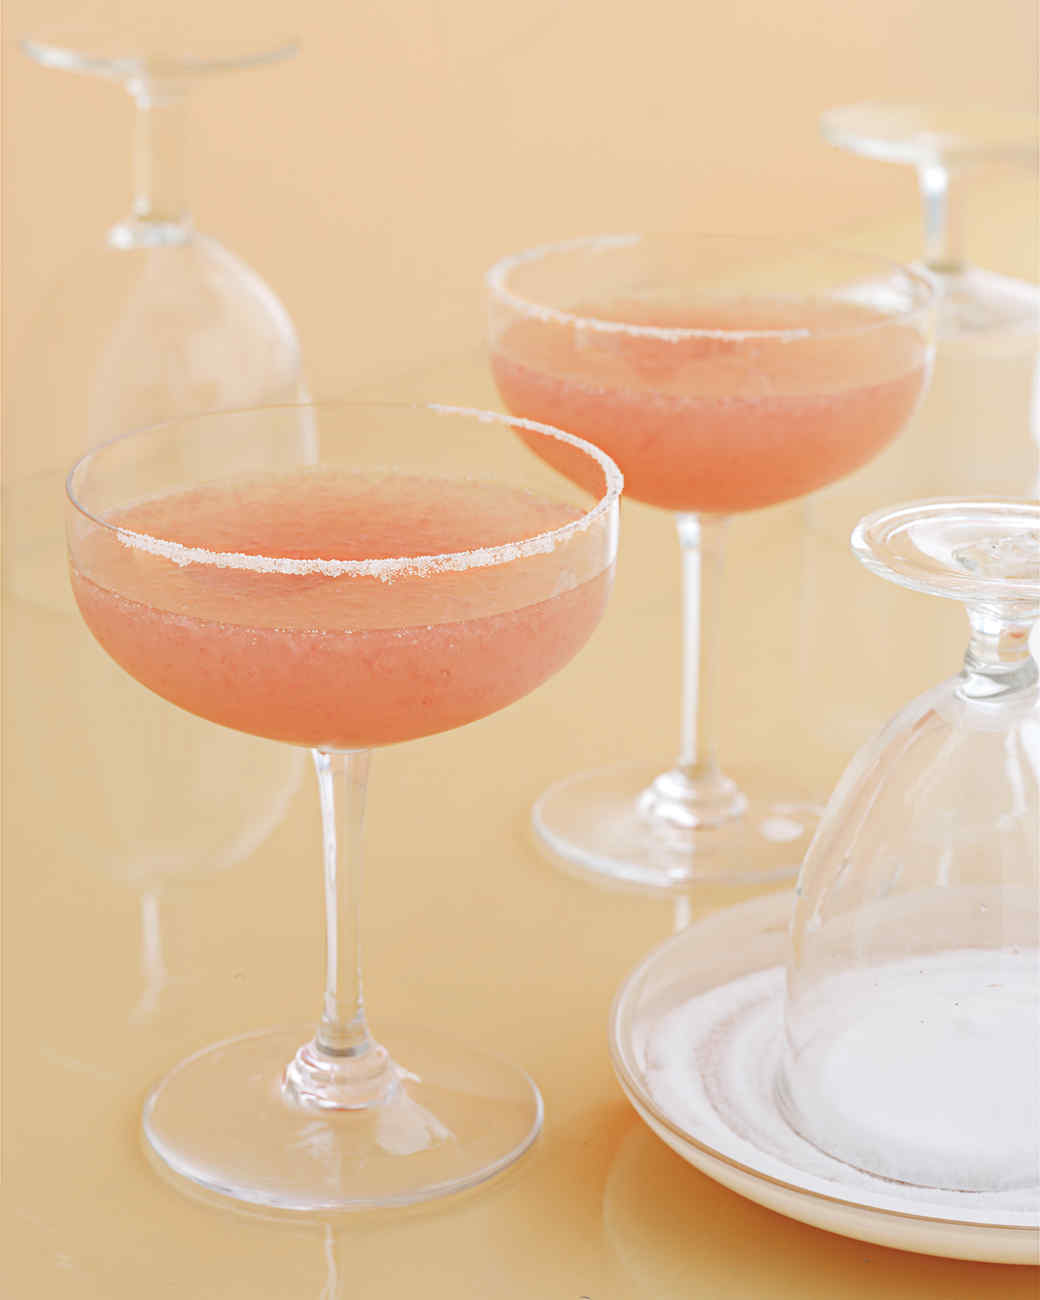 grapefruit-margarita-0507-md102841.jpg